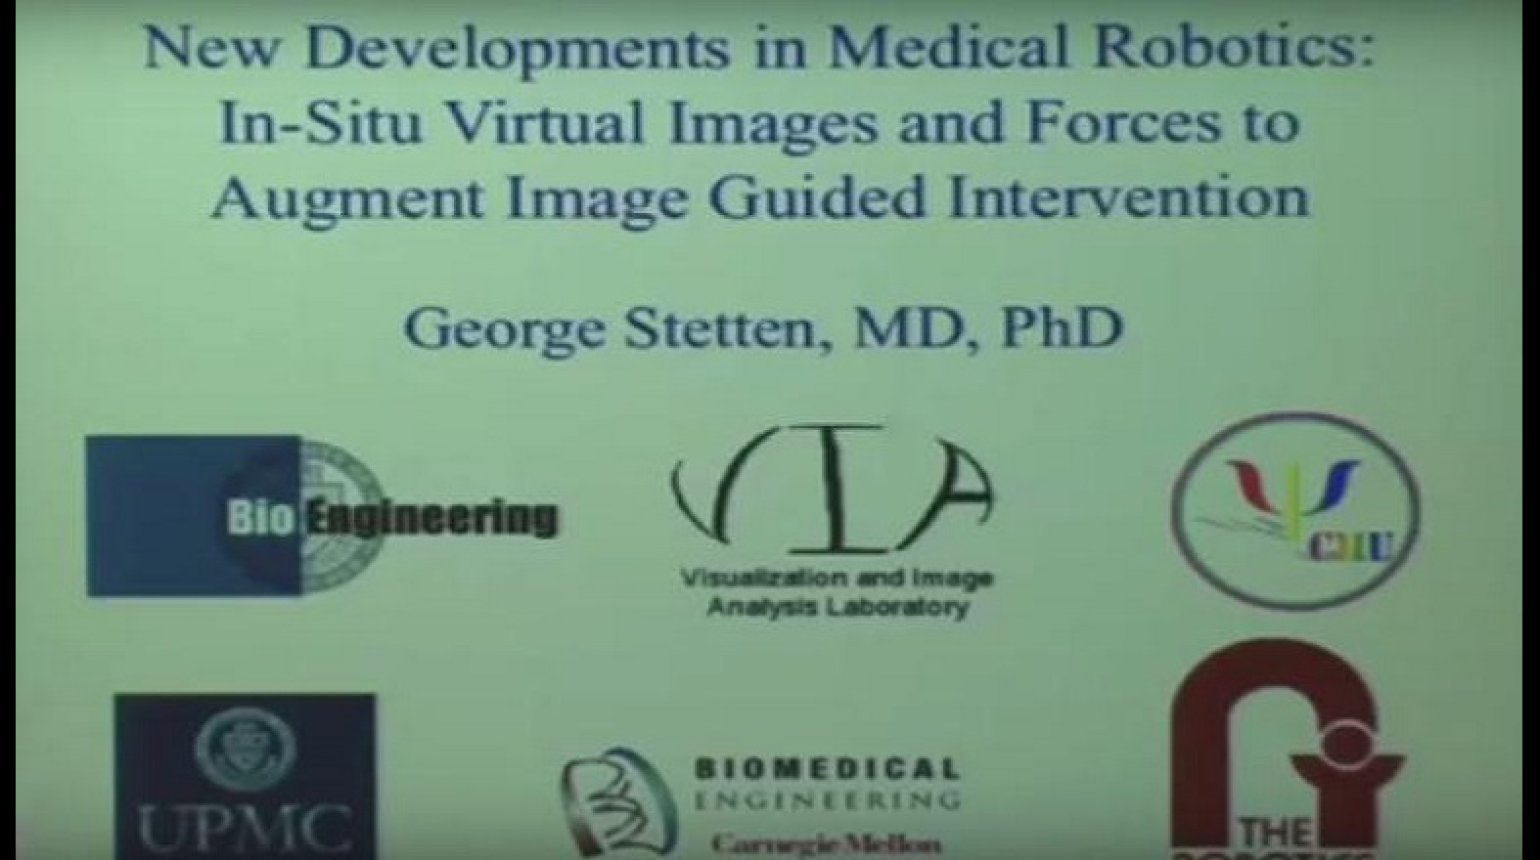 In-situ augmentation of vision and touch in surgery